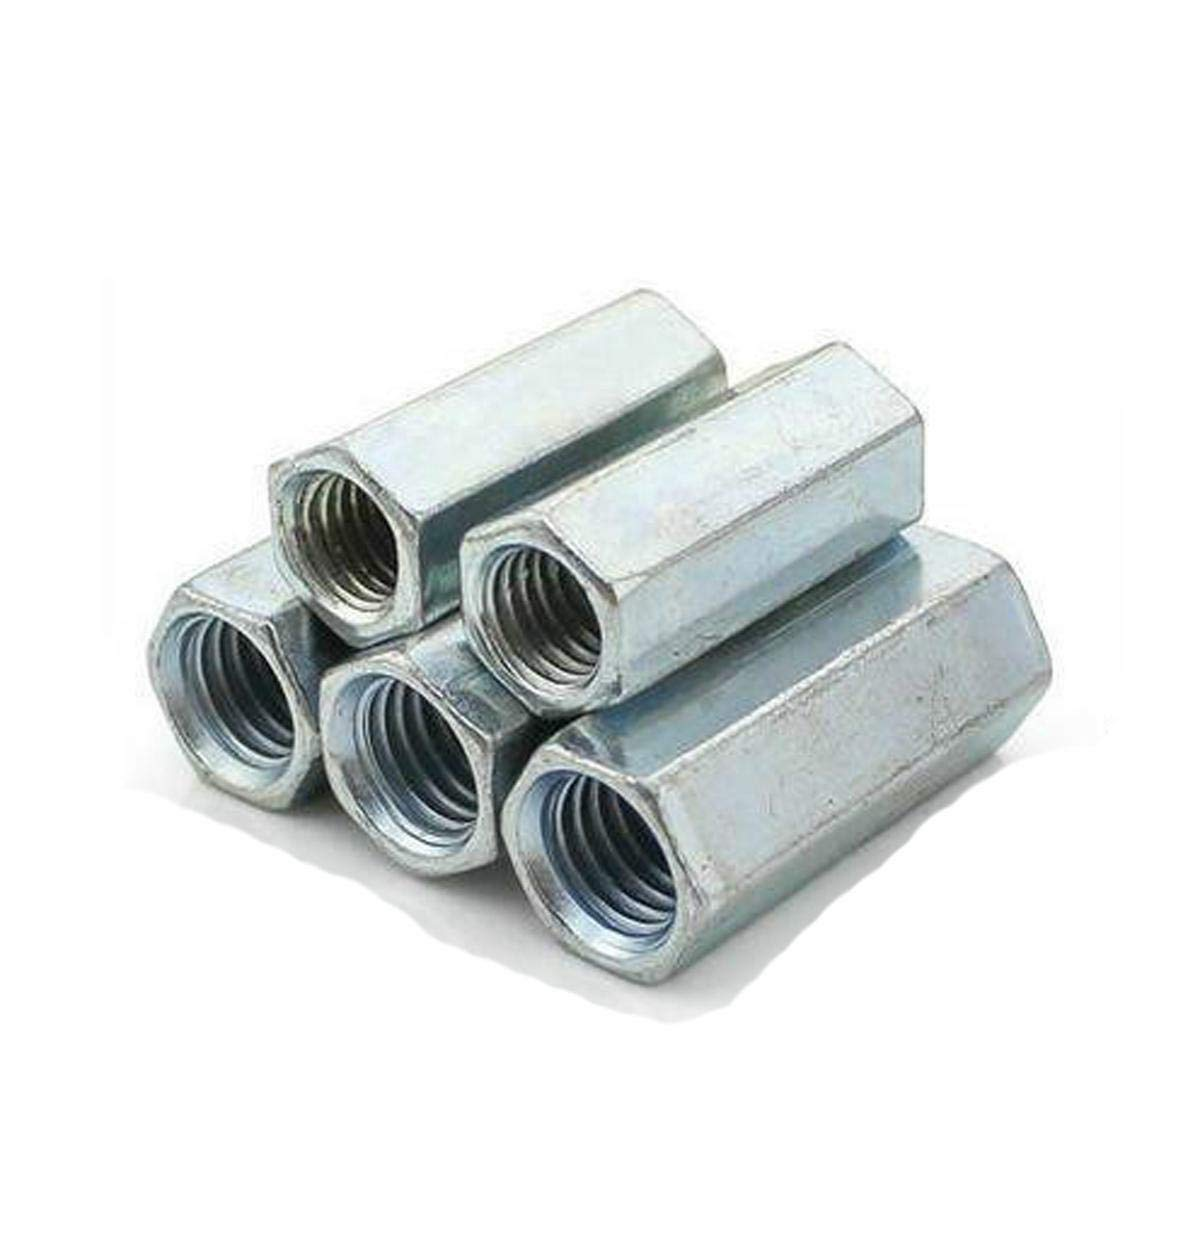 ees.Long Rod Coupling Hex Nut Connector Zinc Plated M8 x 1.25 x 66mm Stock 5pcs